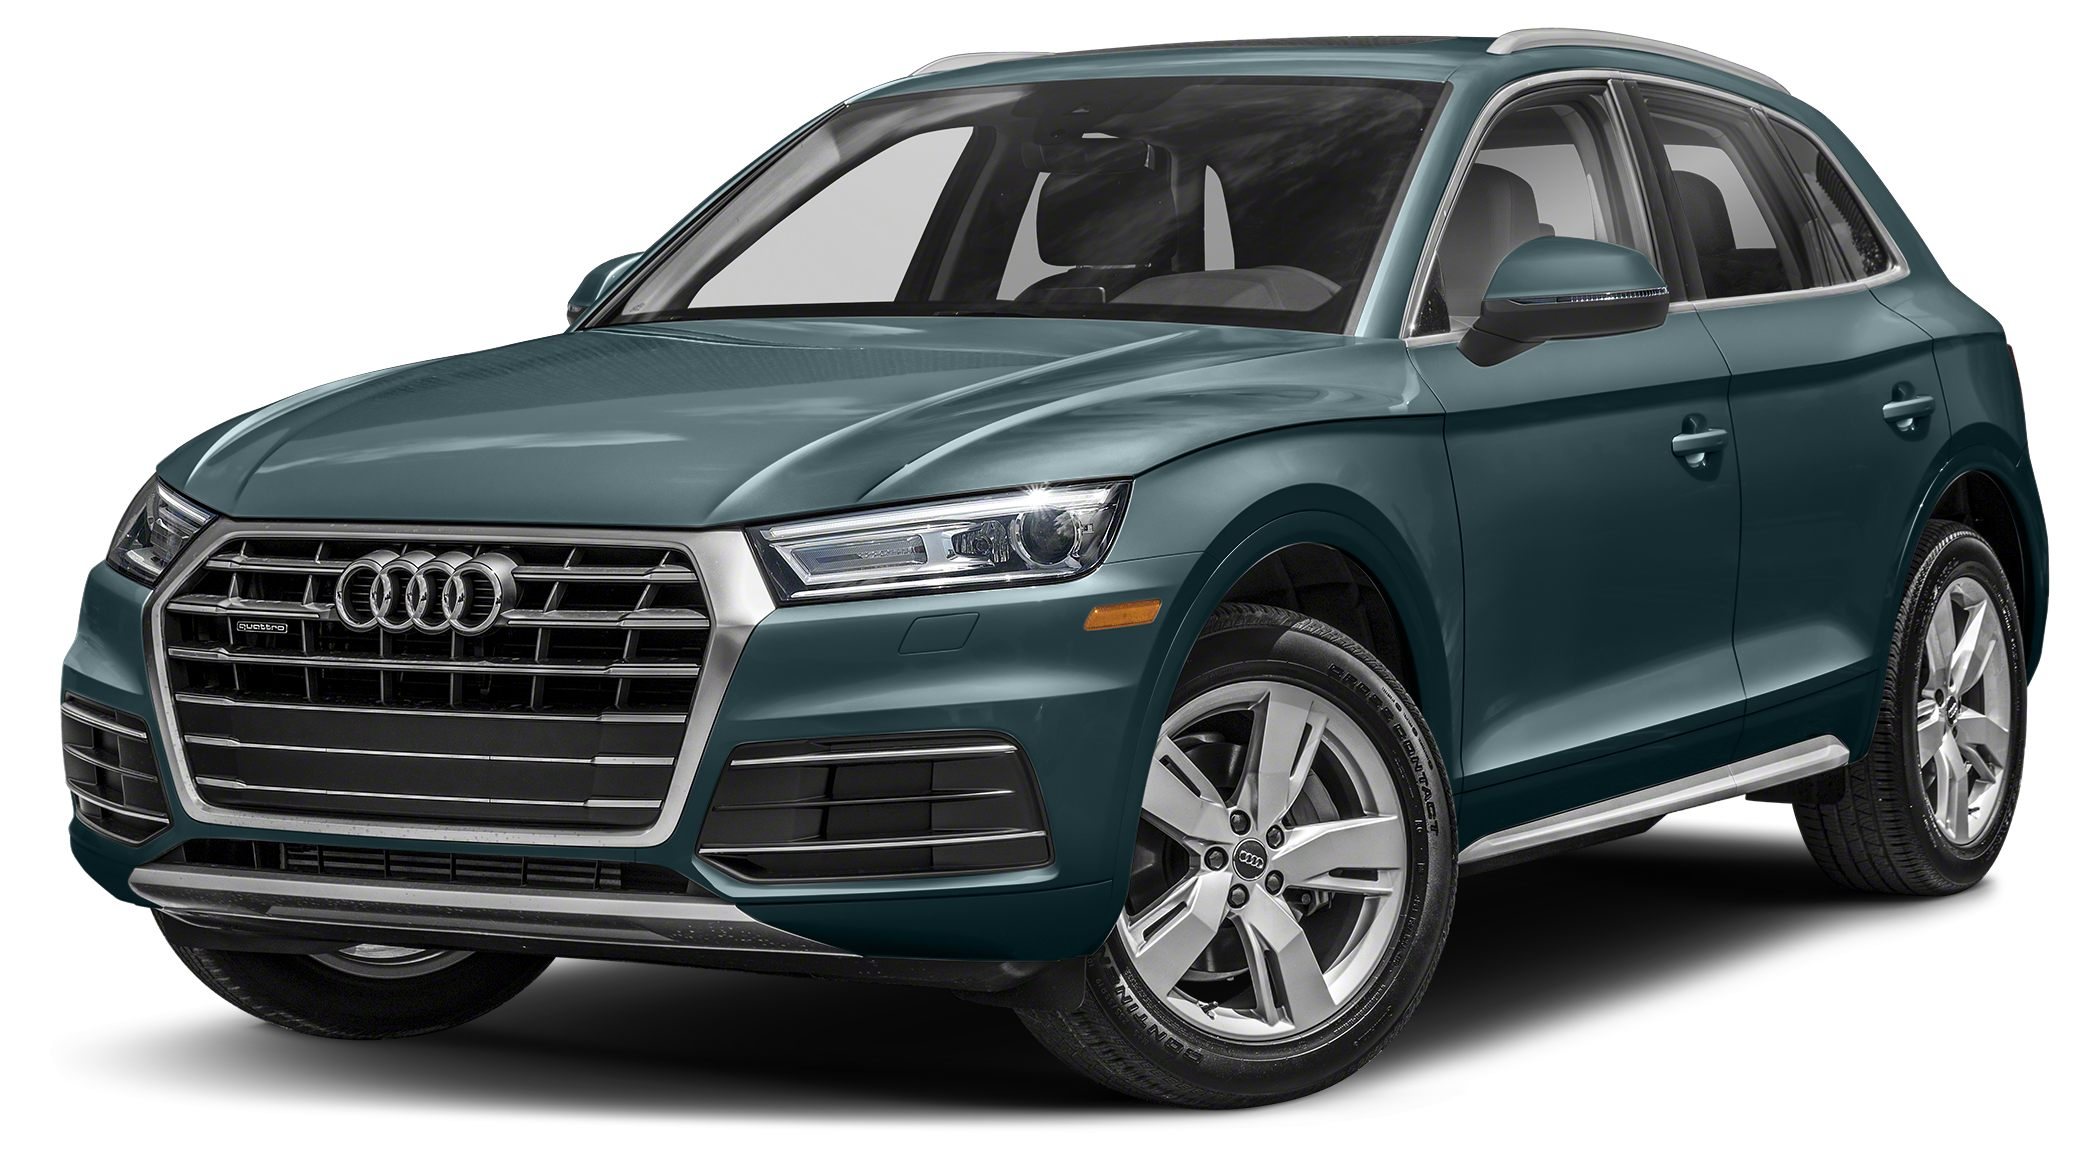 2018 Audi Q5 20T Premium Optional equipment includes Prestige Package Driver Assistance Package